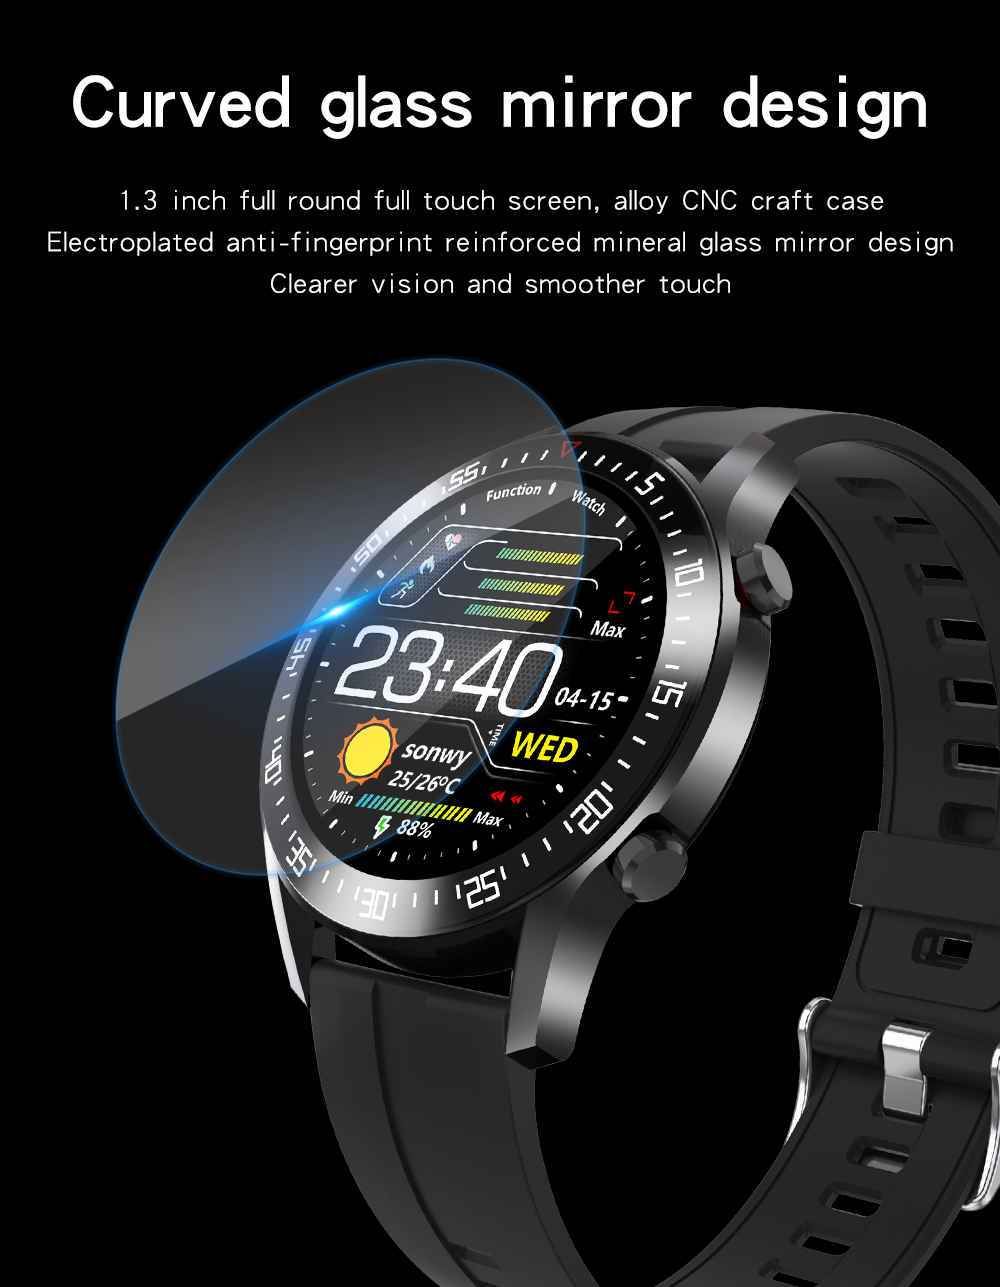 H0ef78437d4e74b84a9dde9e9950cde49z XUESEVEN 2021 HD Full circle touch screen Mens Smart Watches IP68 Waterproof Sports Fitness Watch Fashion Smart Watch for men